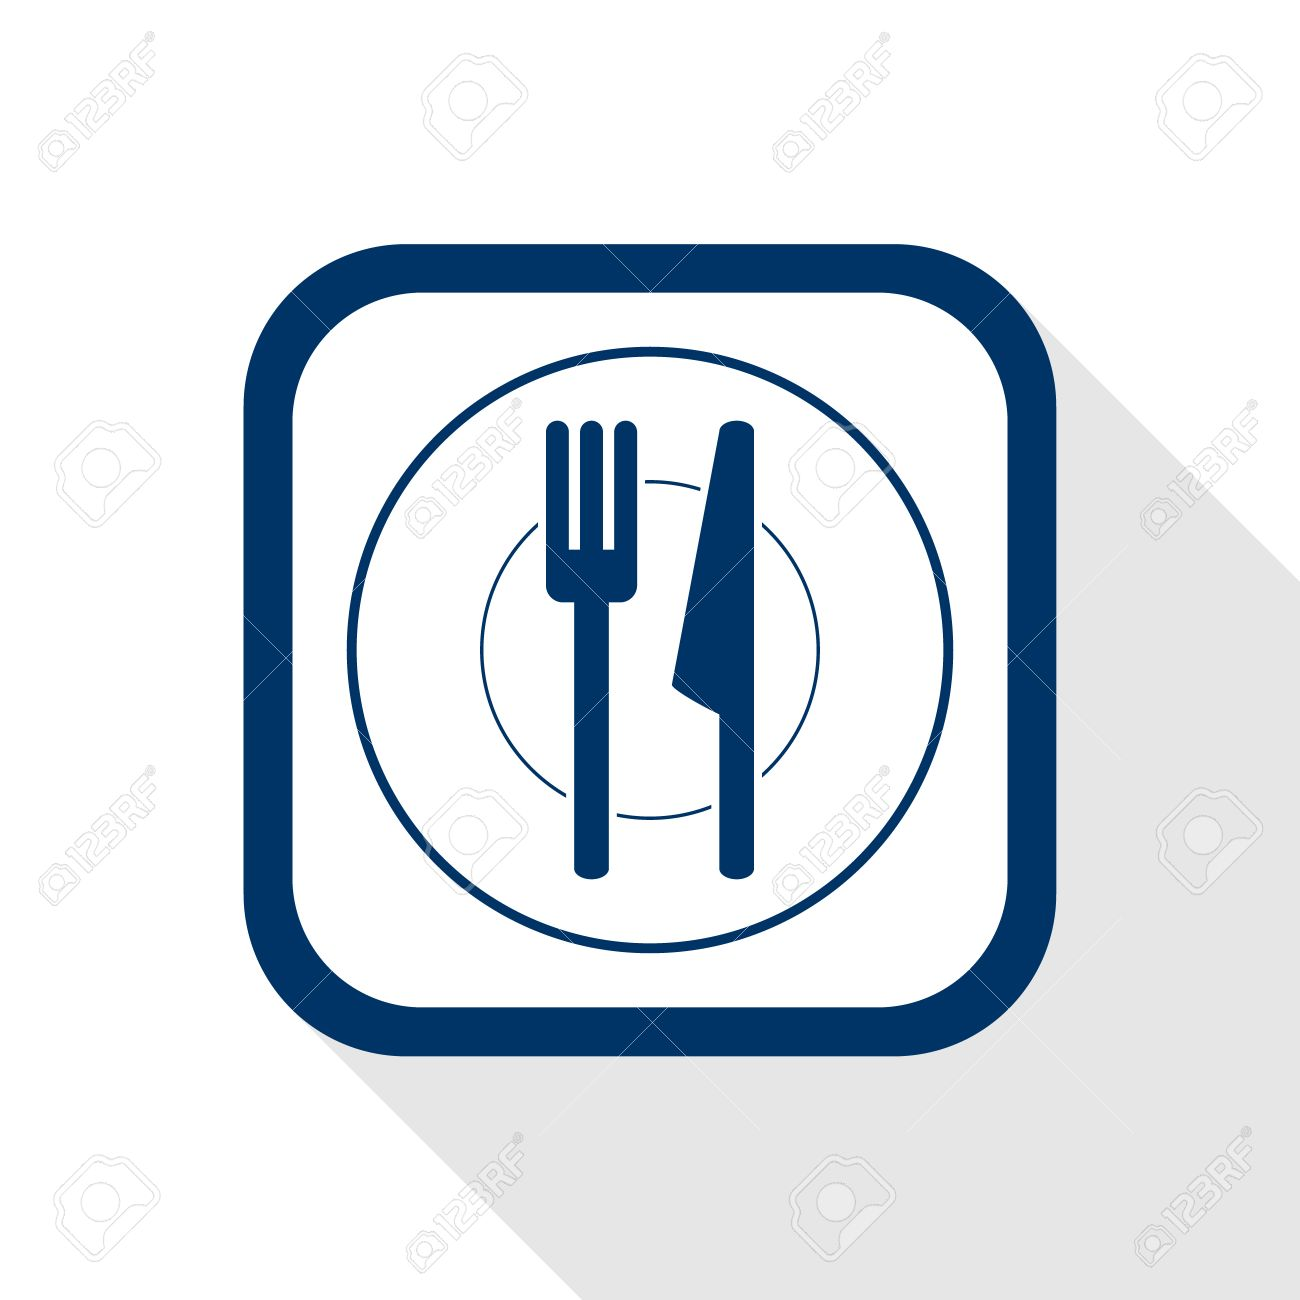 square blue icon plate and cutlery with long shadow - symbol of restaurant menu kitchen  sc 1 st  123RF.com & Square Blue Icon Plate And Cutlery With Long Shadow - Symbol ...